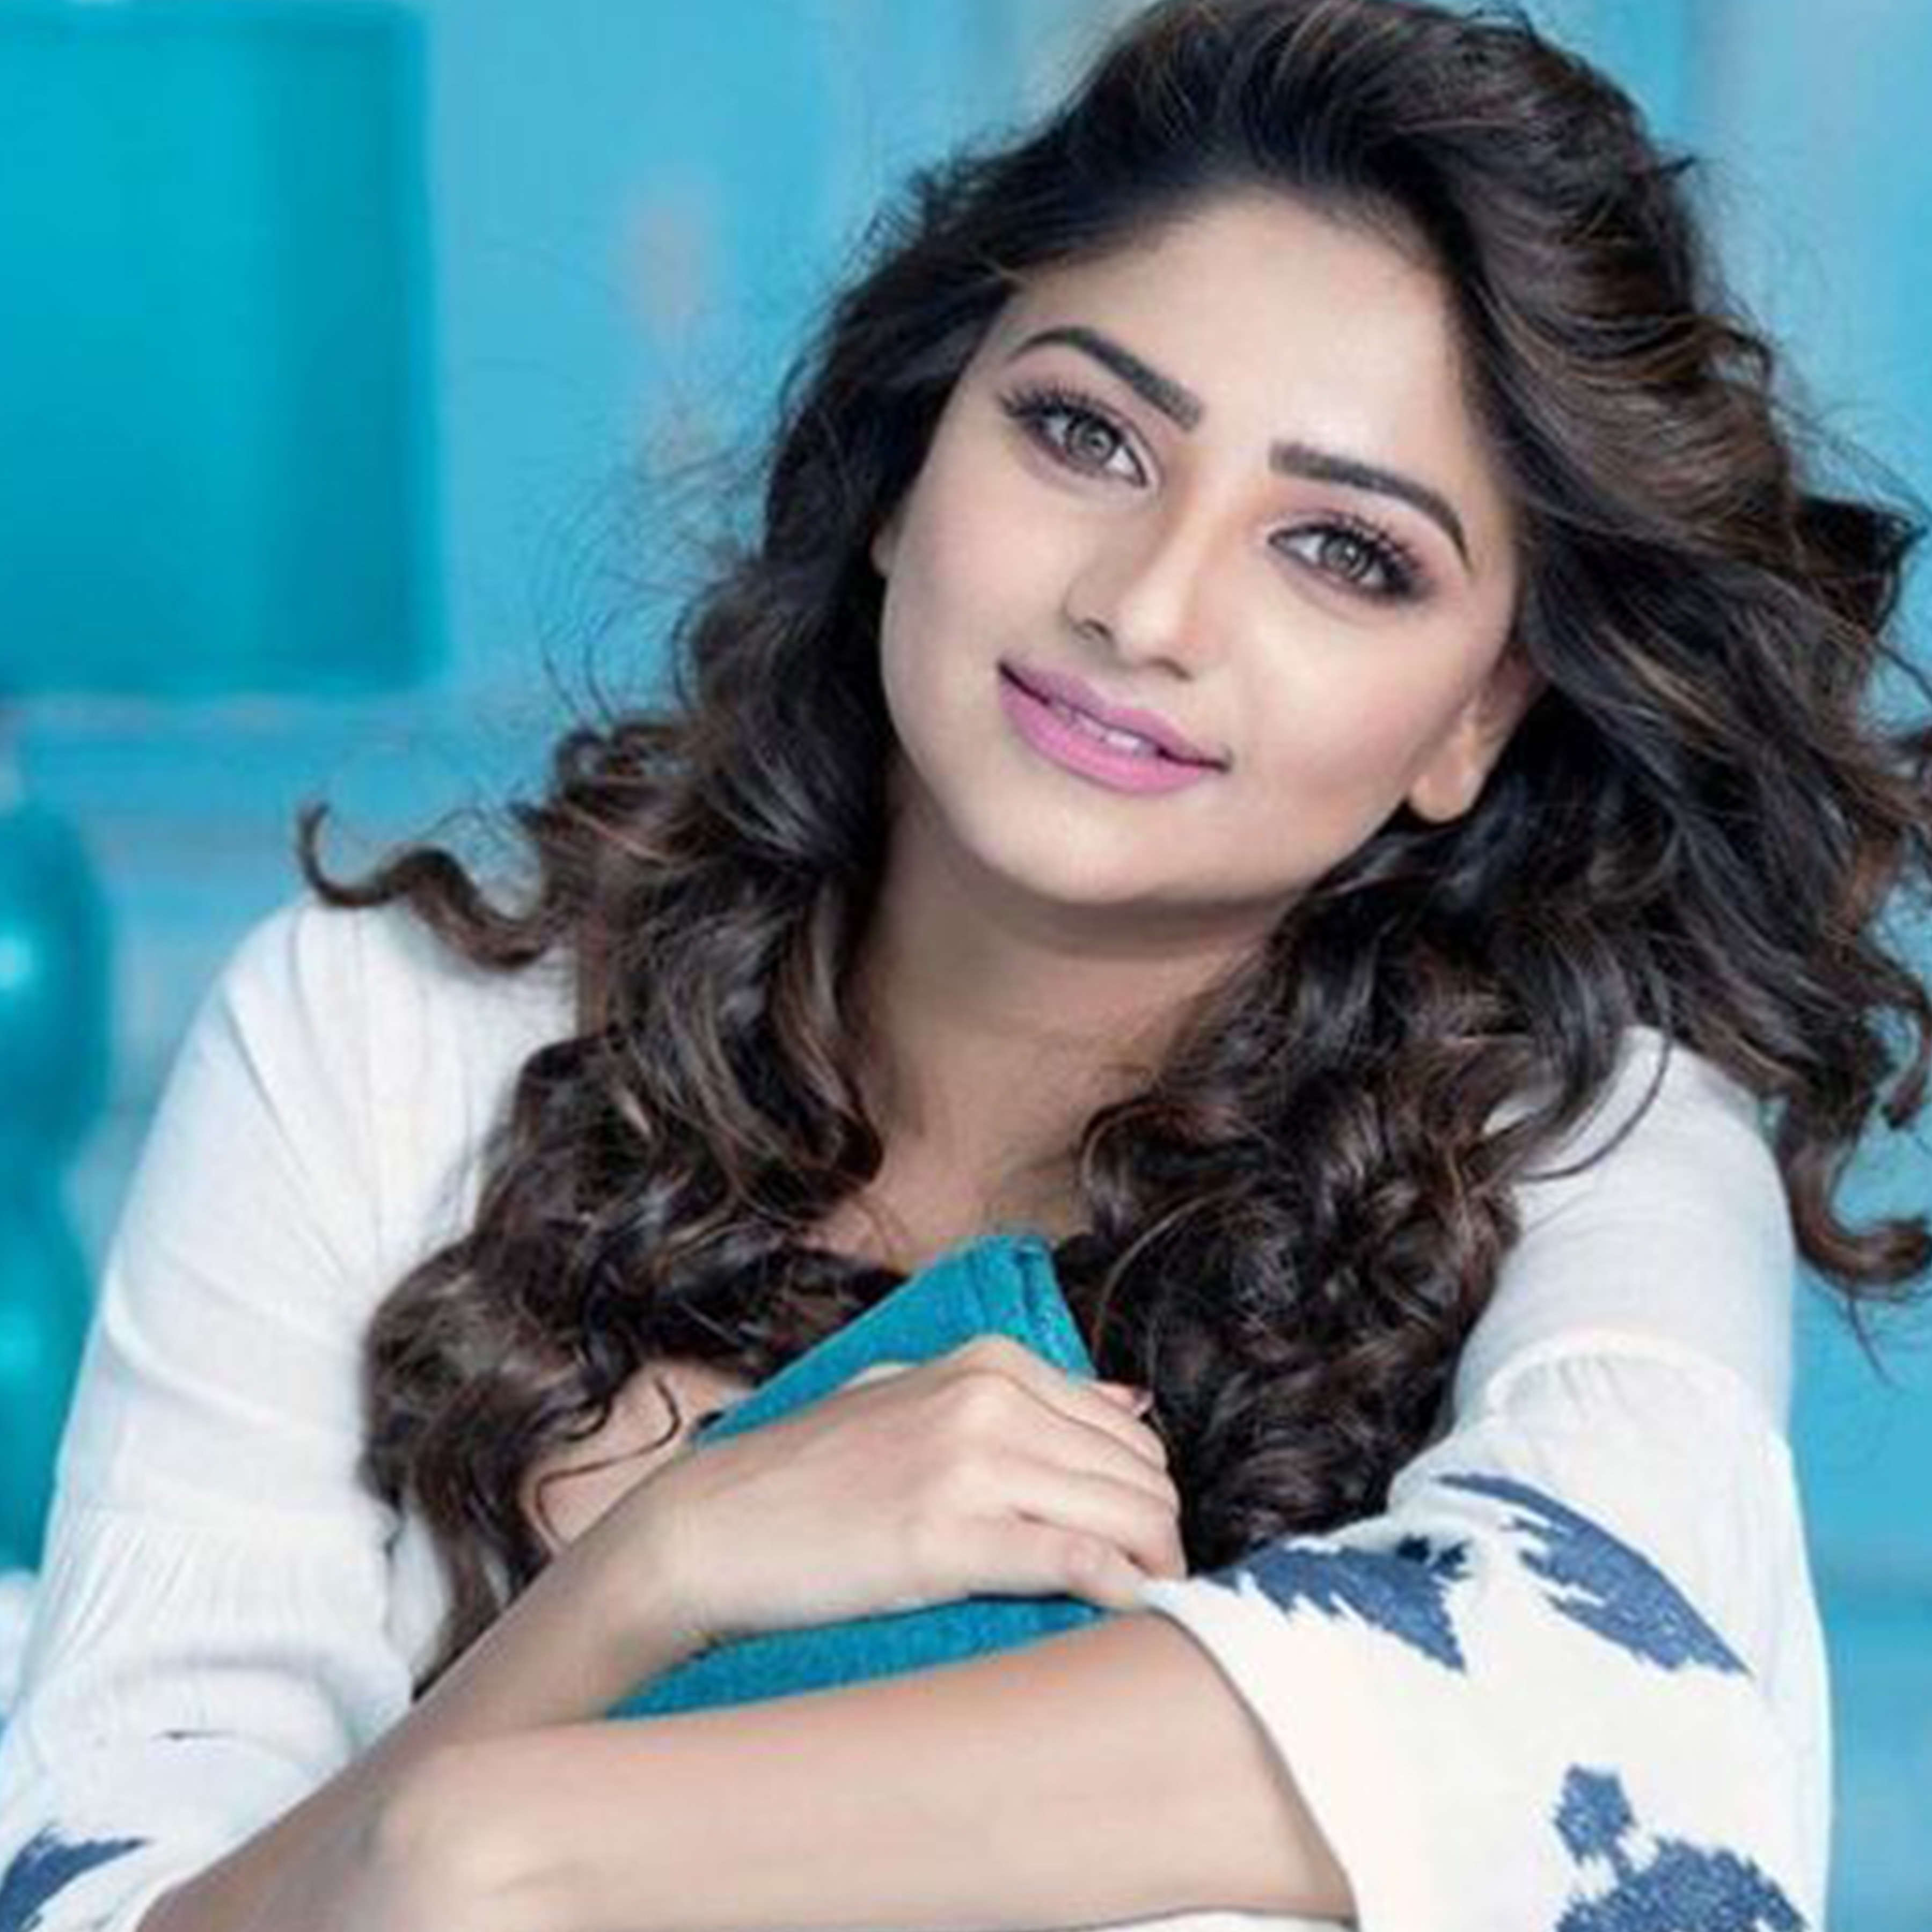 Rachita Kumar nudes (75 foto and video), Pussy, Is a cute, Boobs, braless 2017